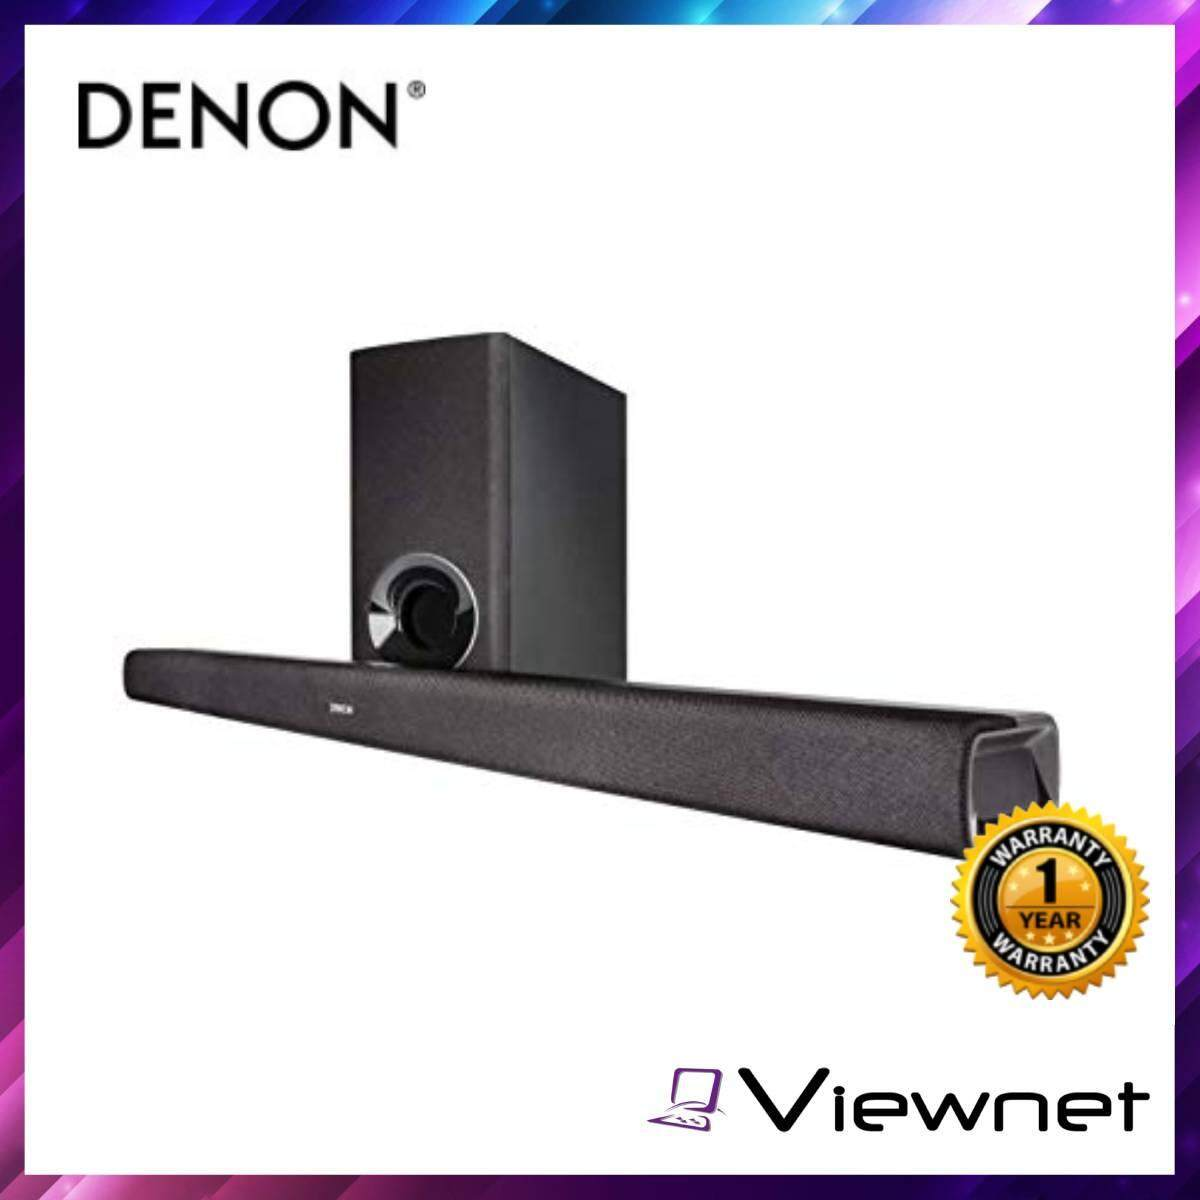 Denon Home Theater Sound Bar with Wireless Subwoofer (DHT-S316) Black HDMI with Audio Return Channel Bluetooth AUX input (3.5mm)